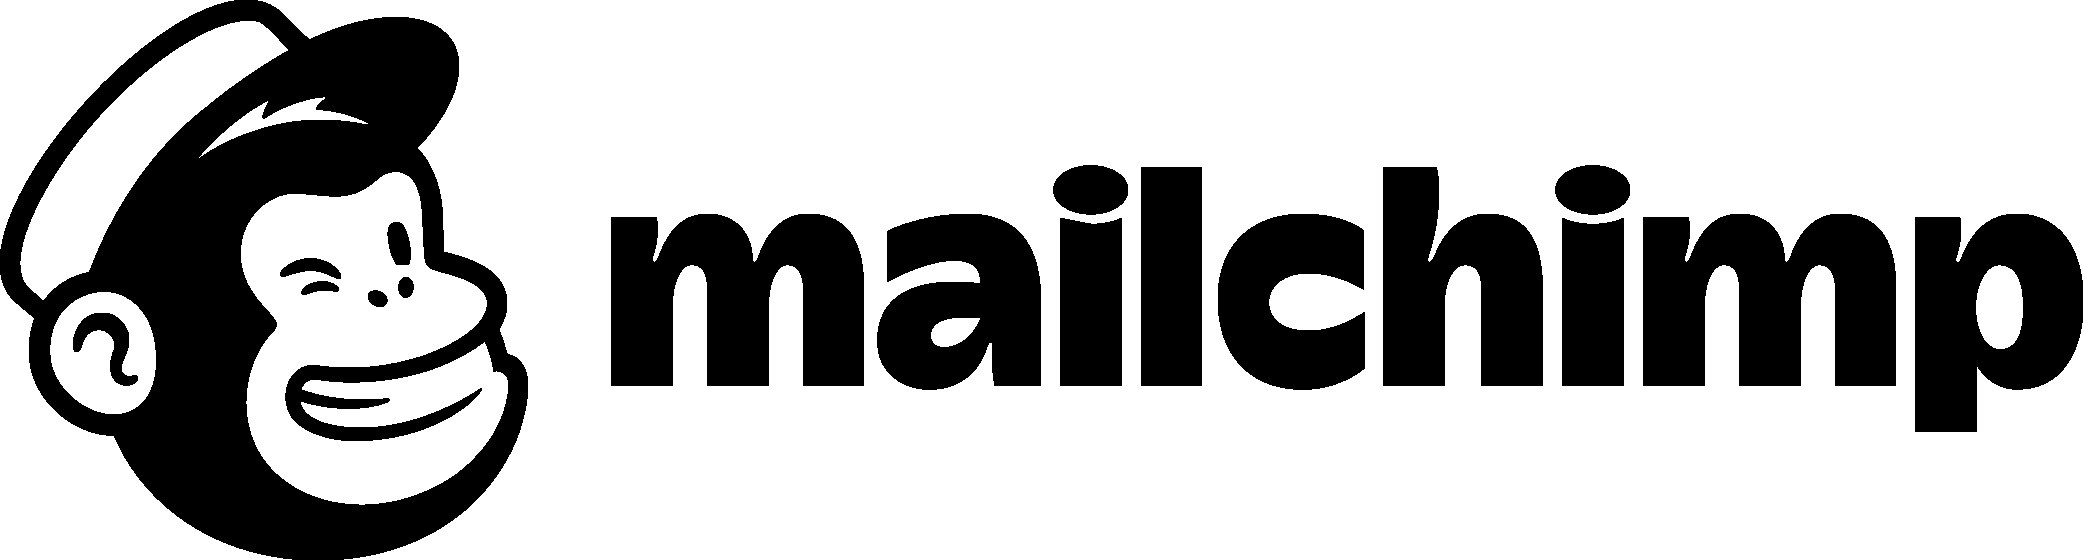 sign up for mailchimp